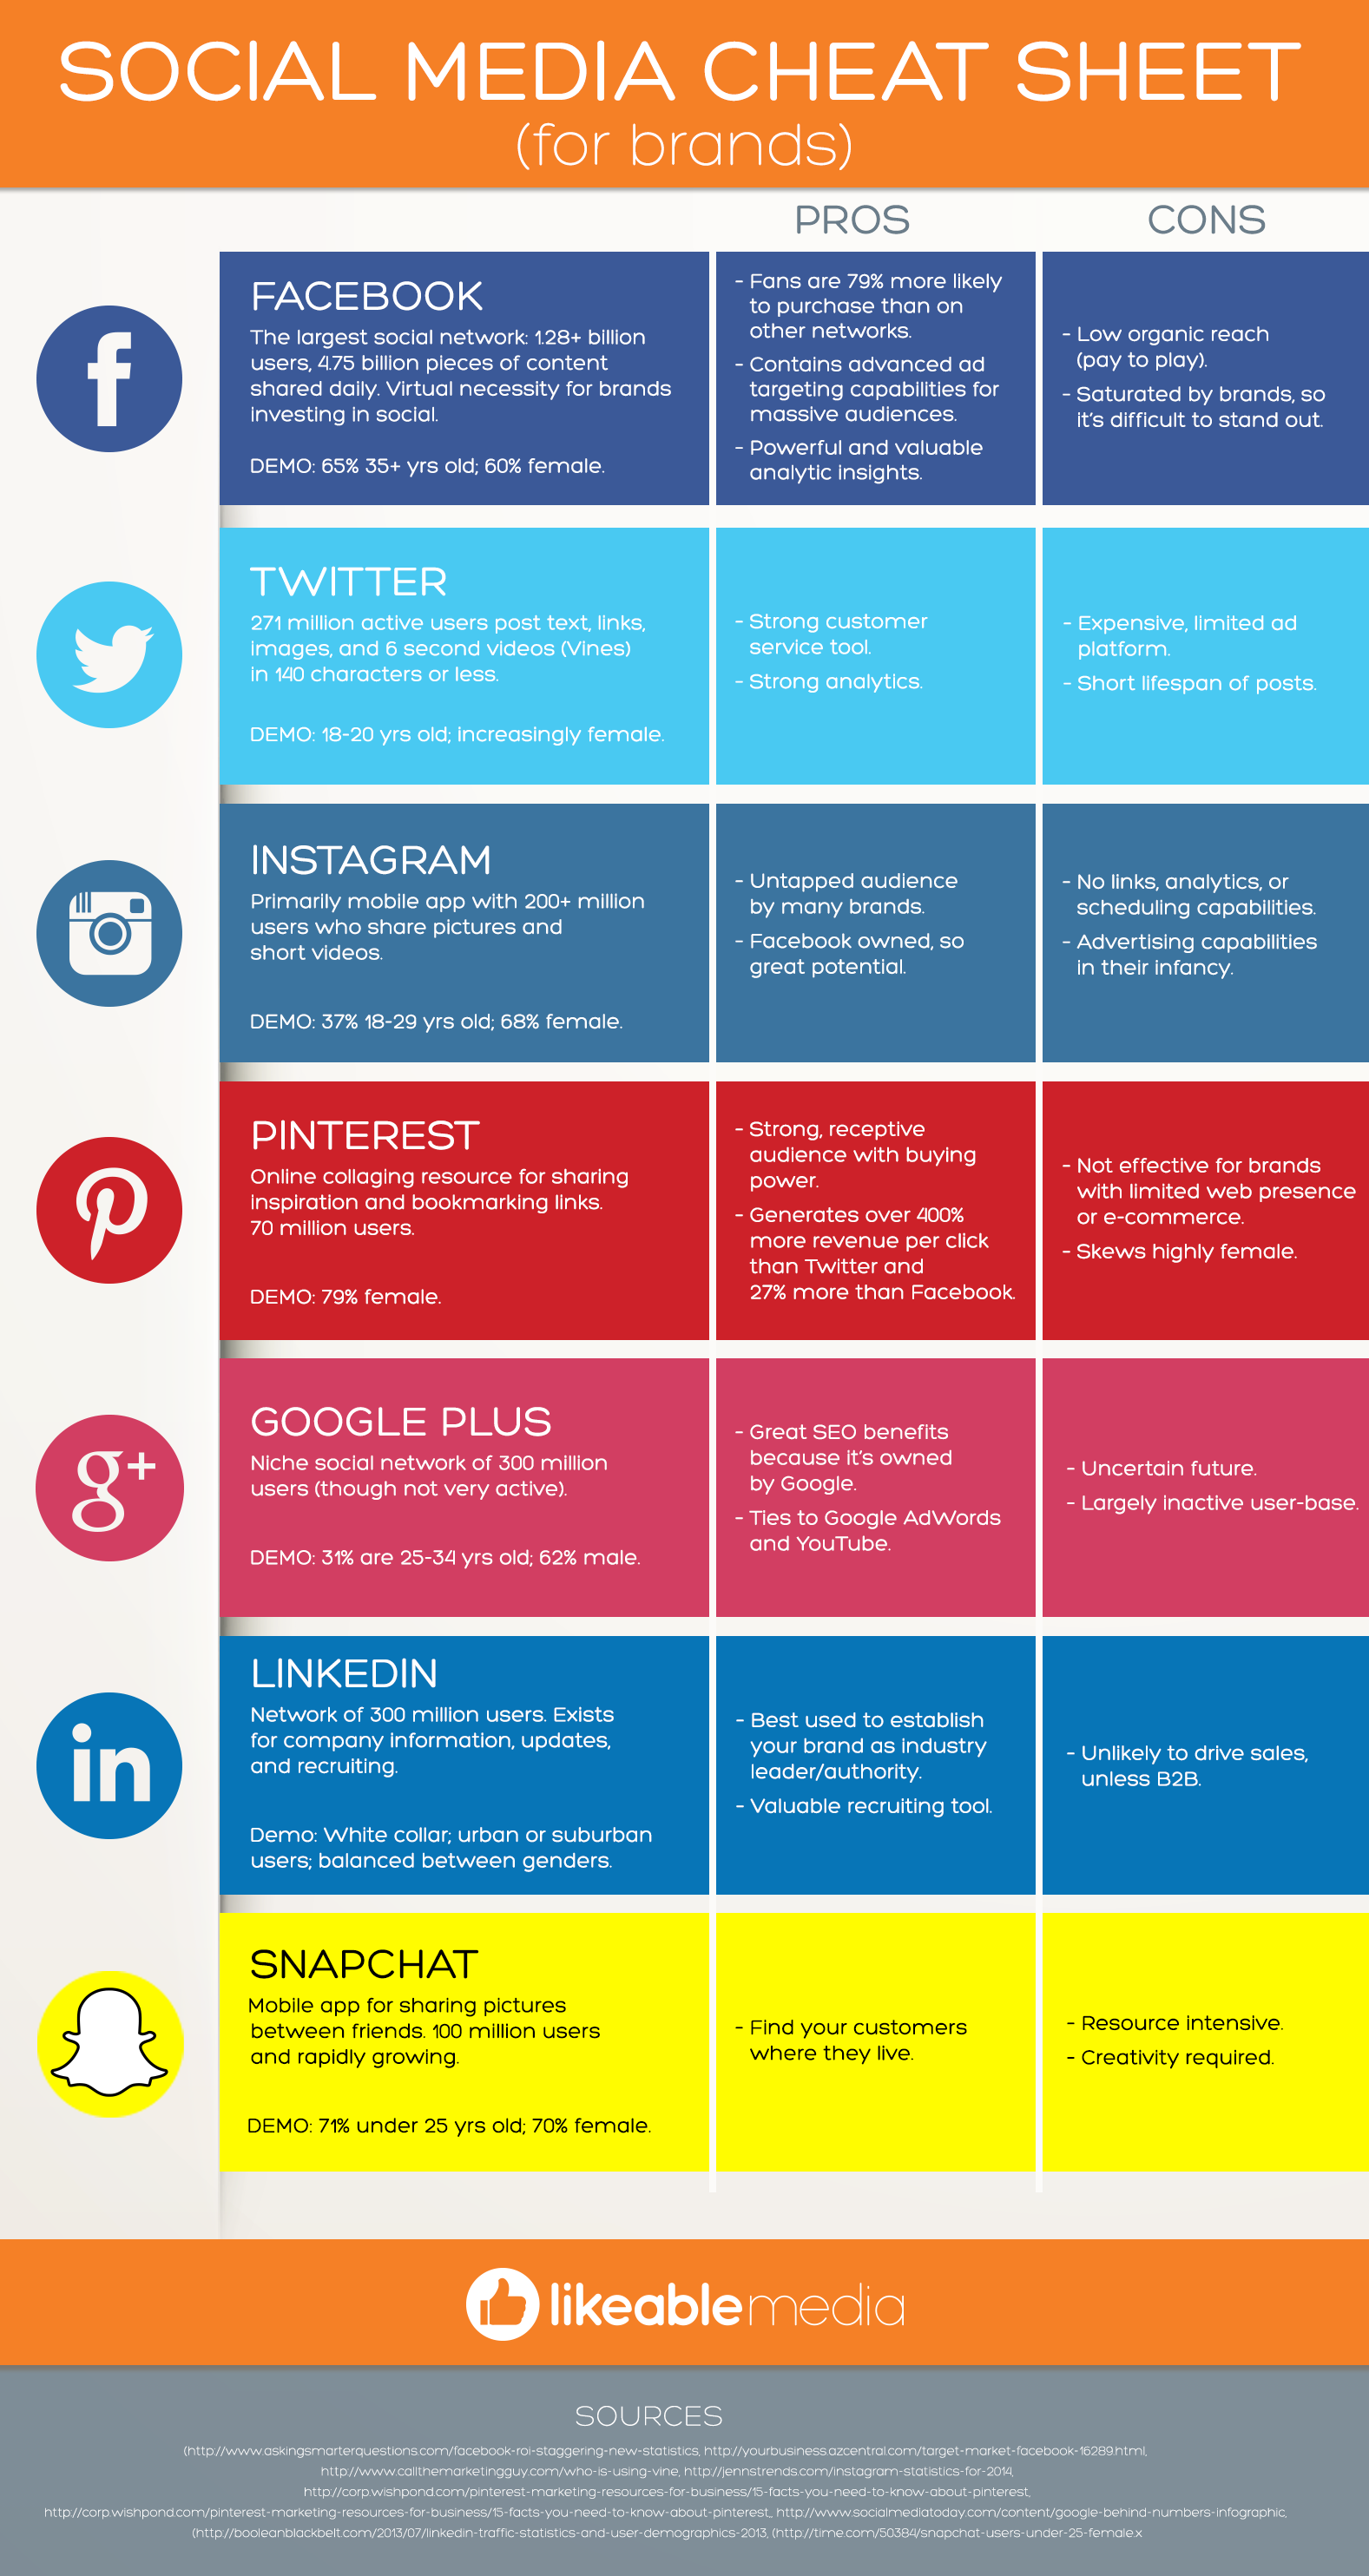 Likeable_Blog_Infographic_Brands